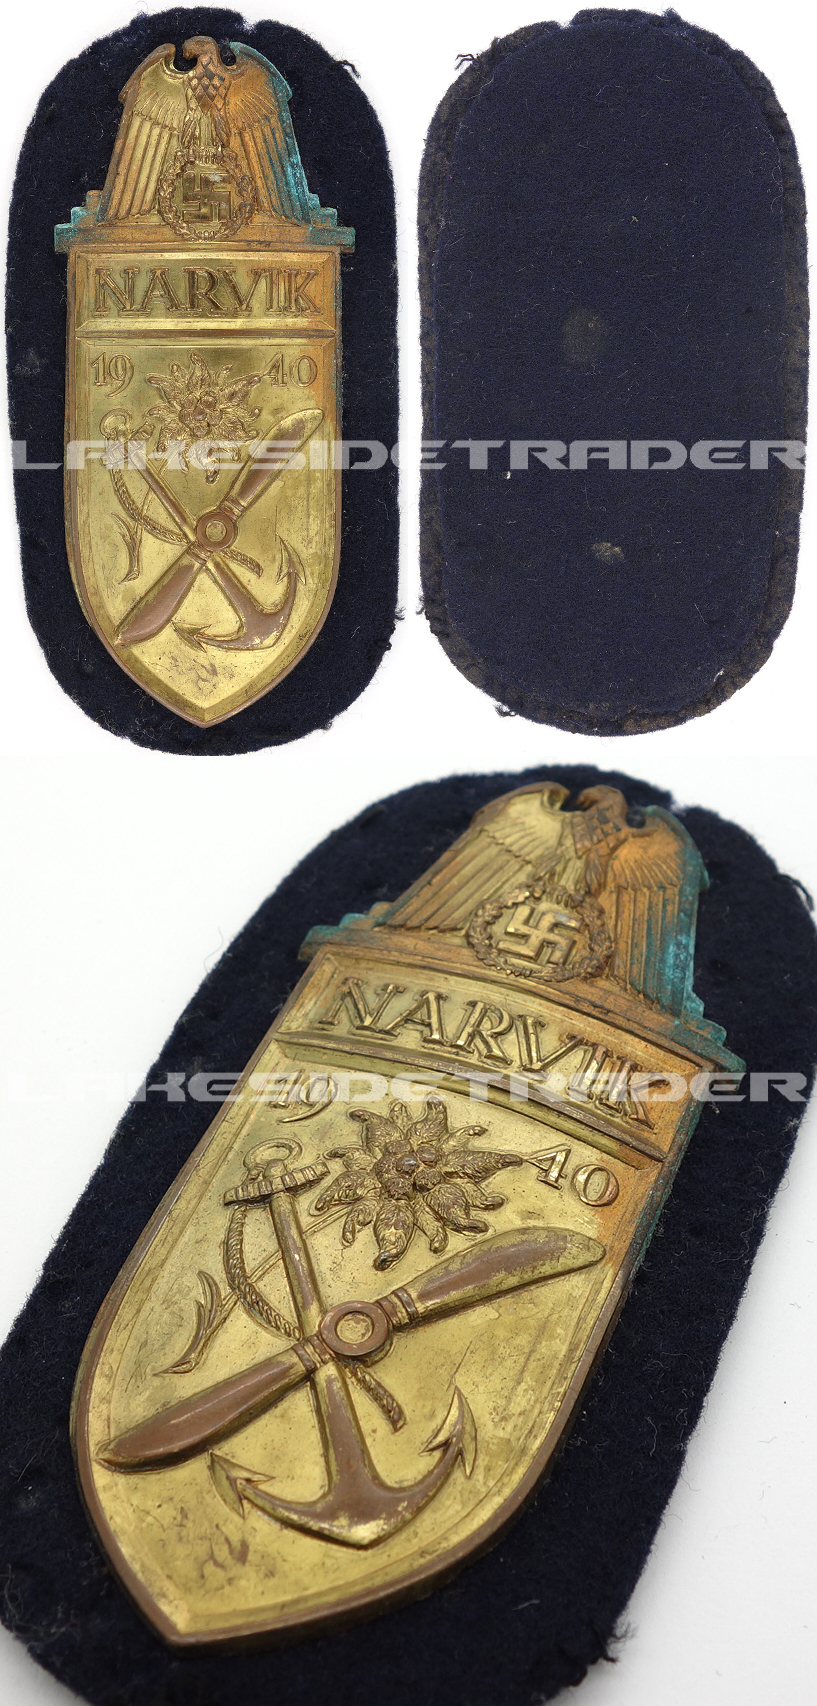 Narvik Campaign Arm Shield